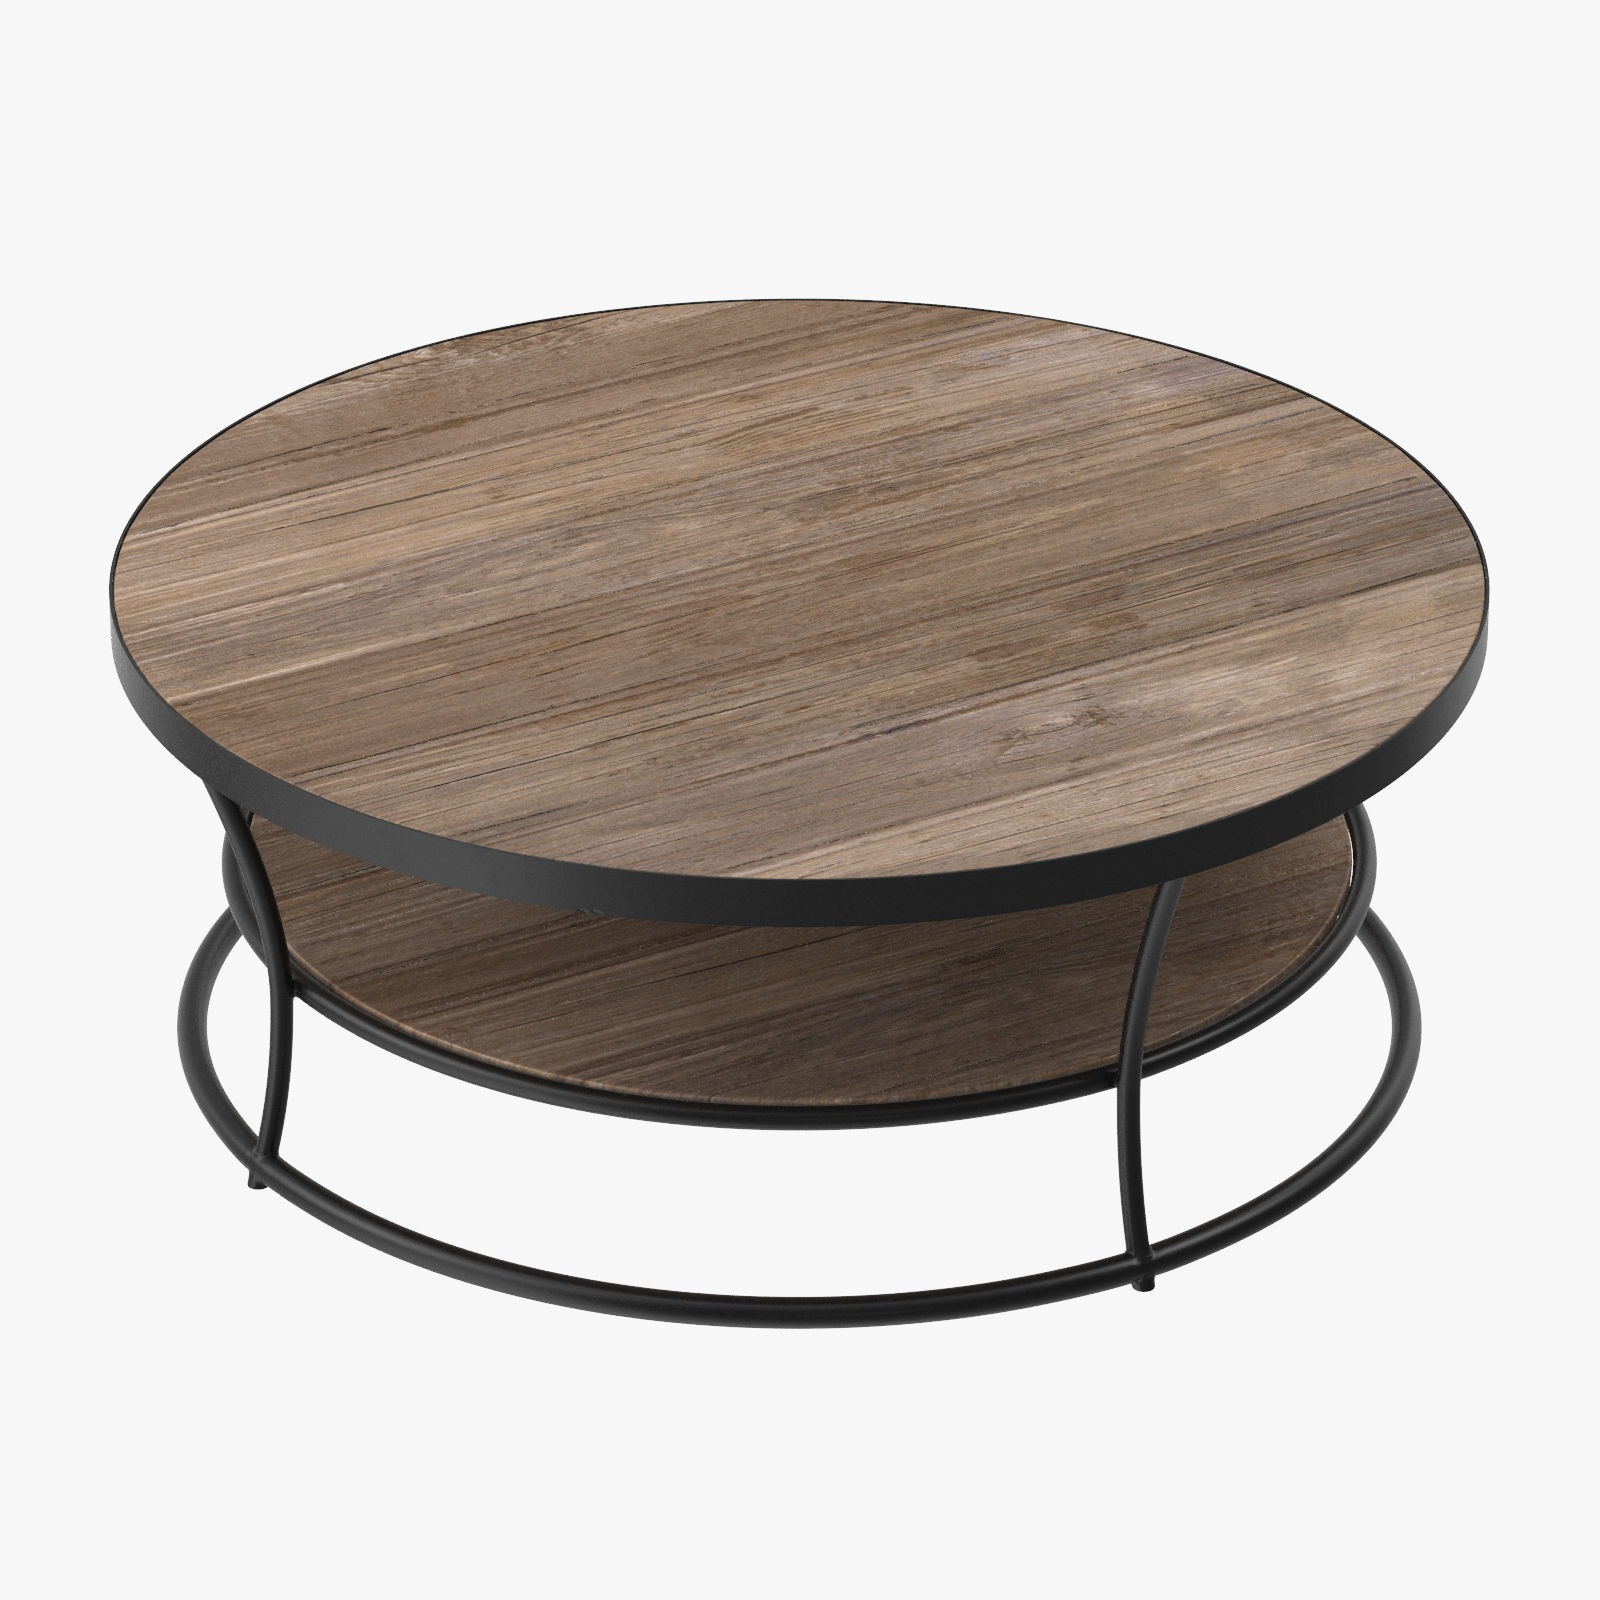 - Patio Coffee Table Round 02